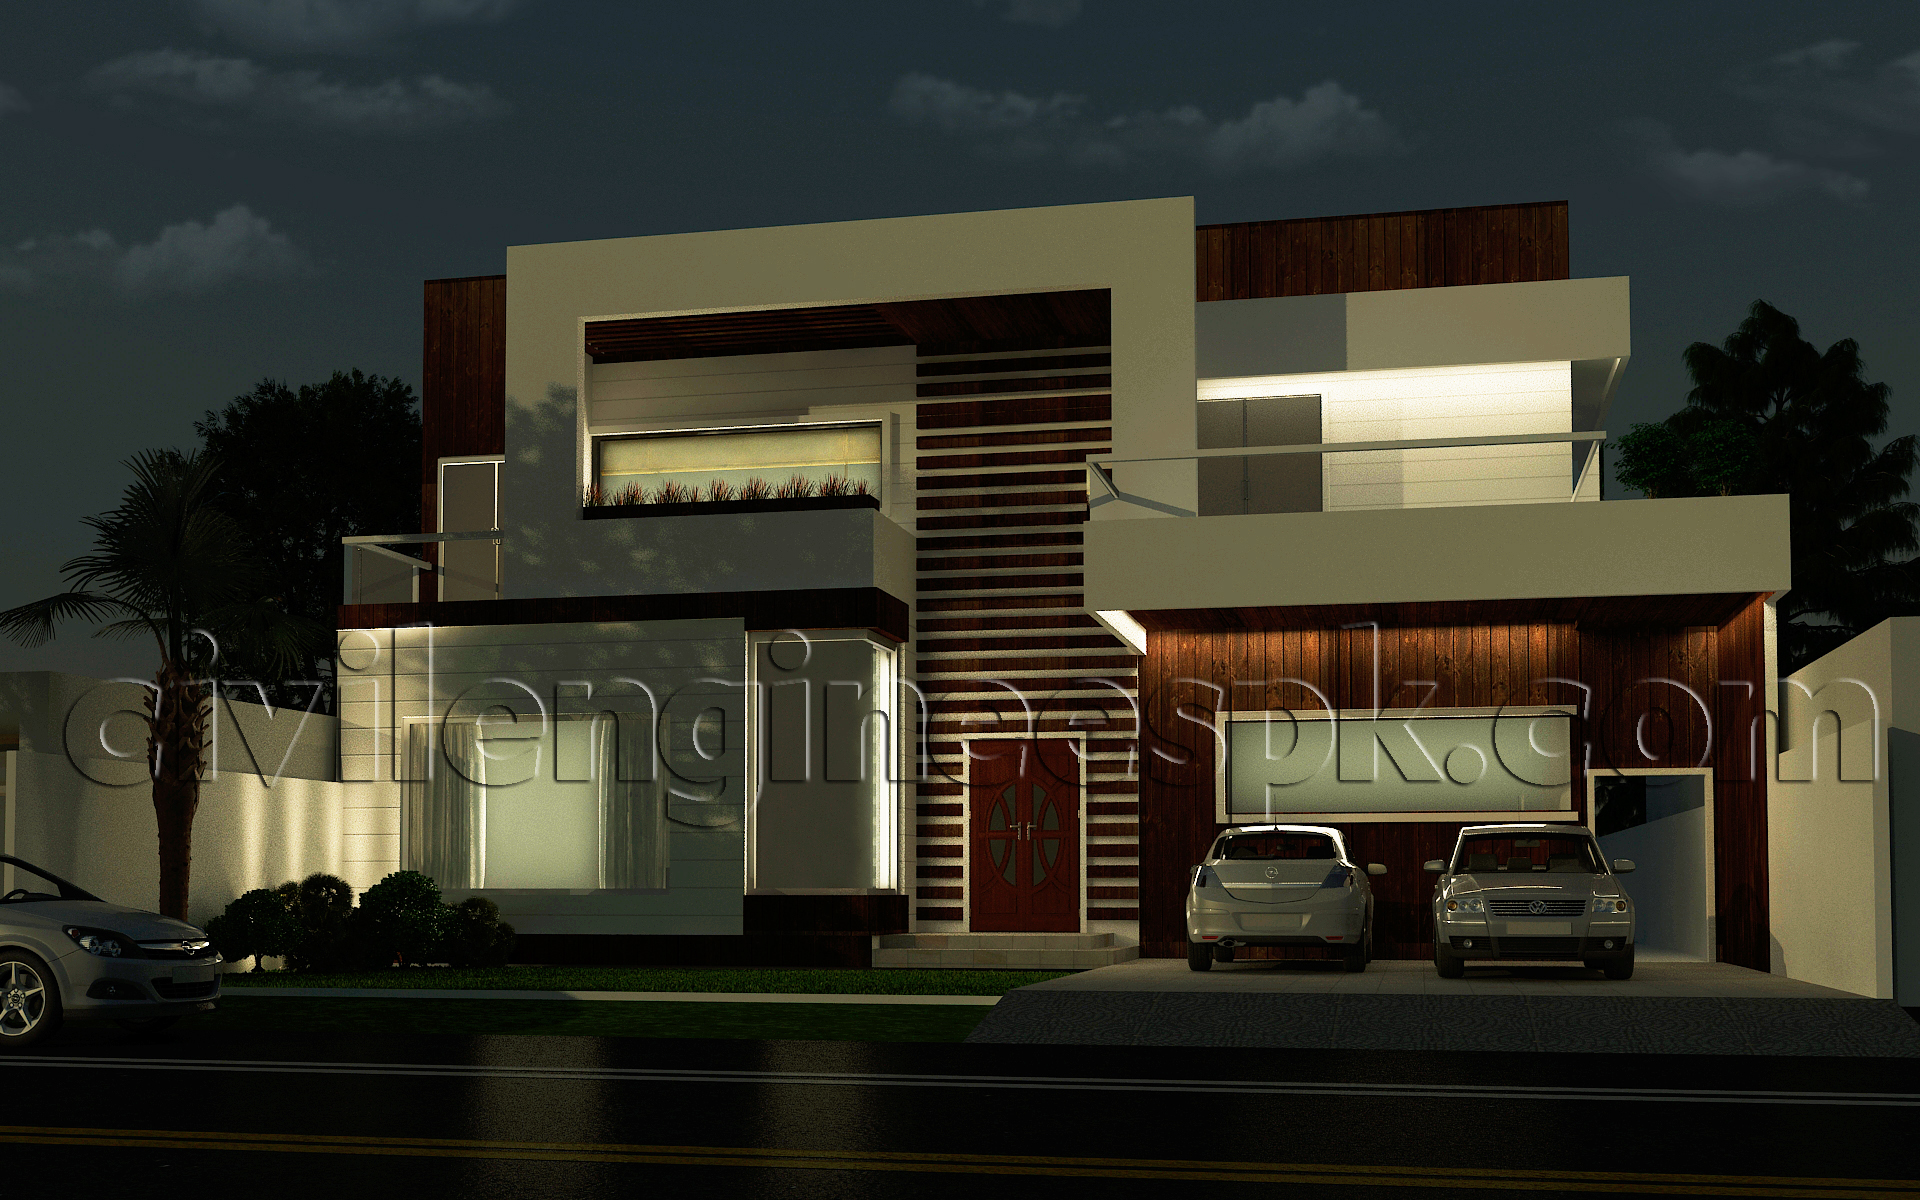 There are more 1 kanal house plans including first floor and second floor these are for you to have an idea about the kind of plan you want